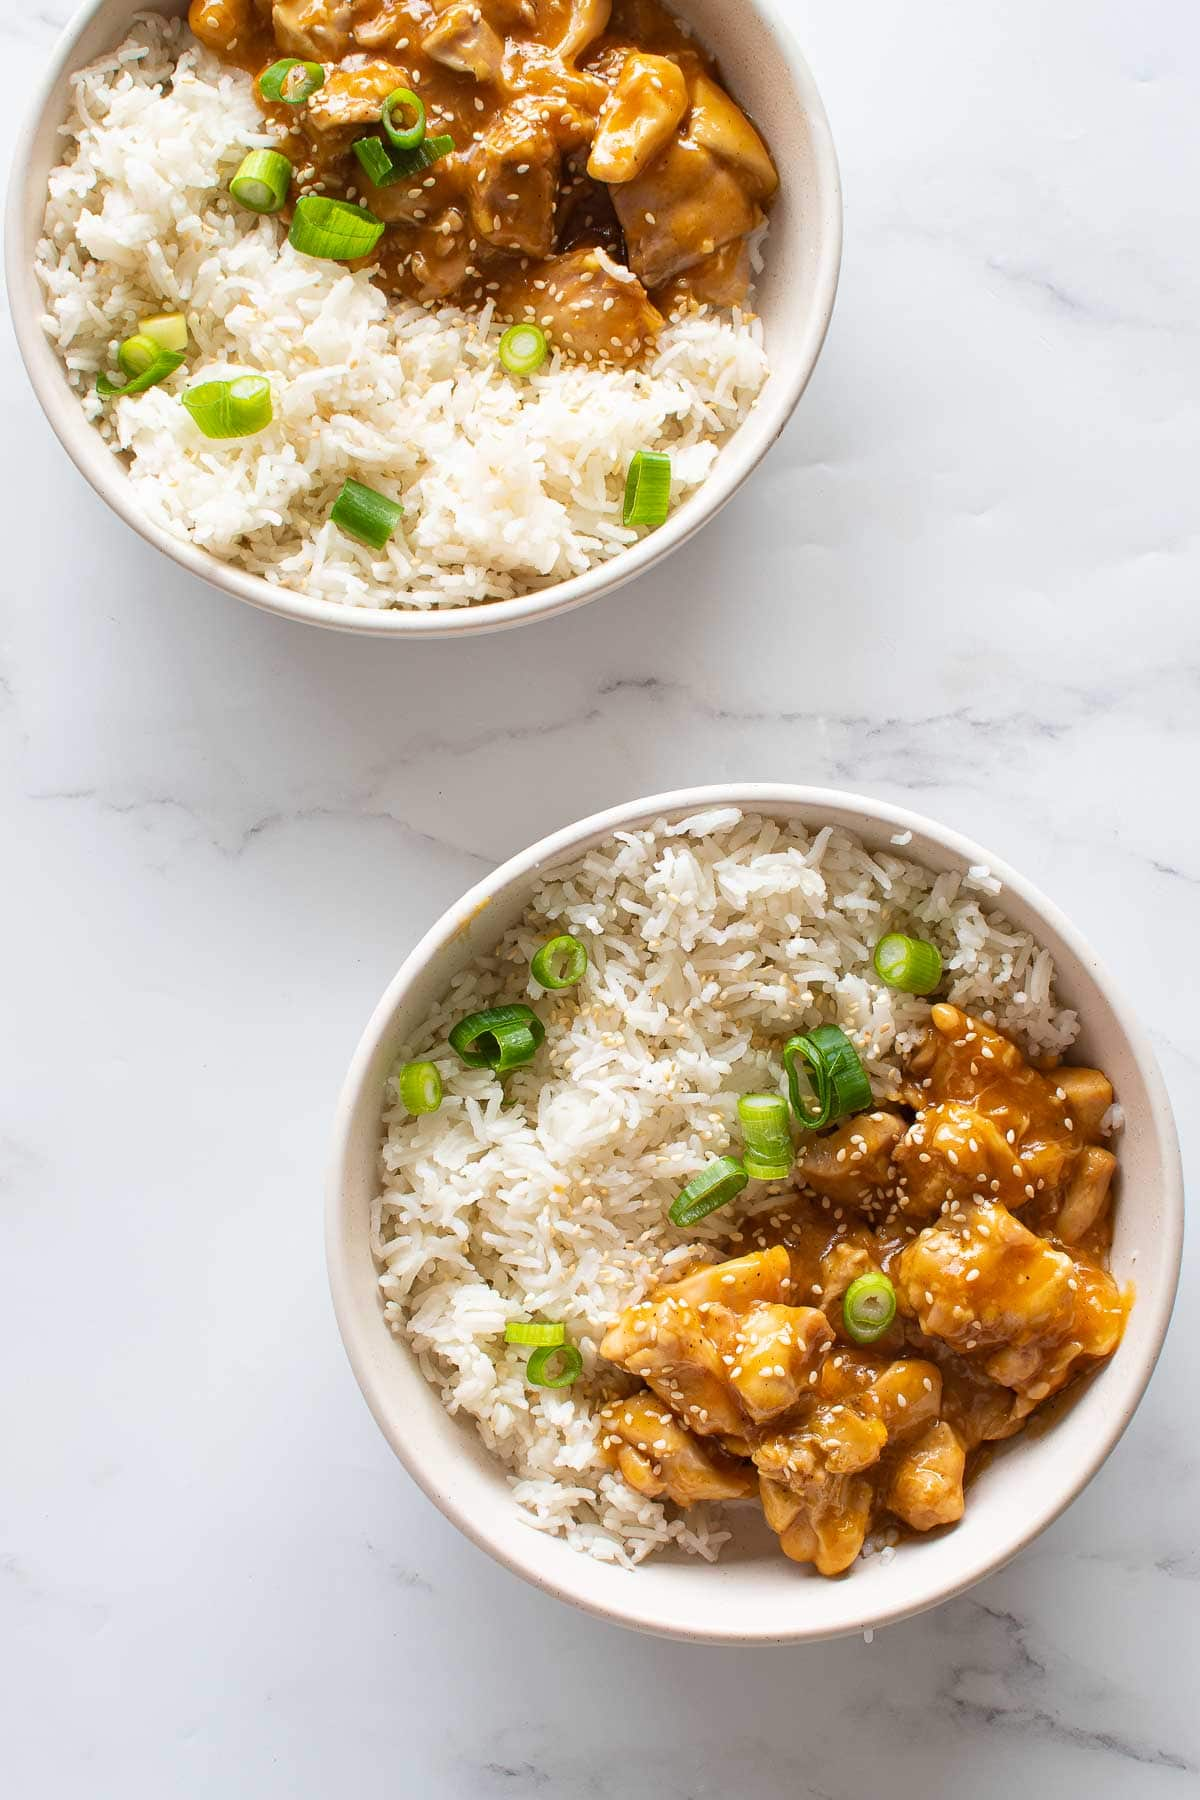 Two bowls with orange chicken and rice.